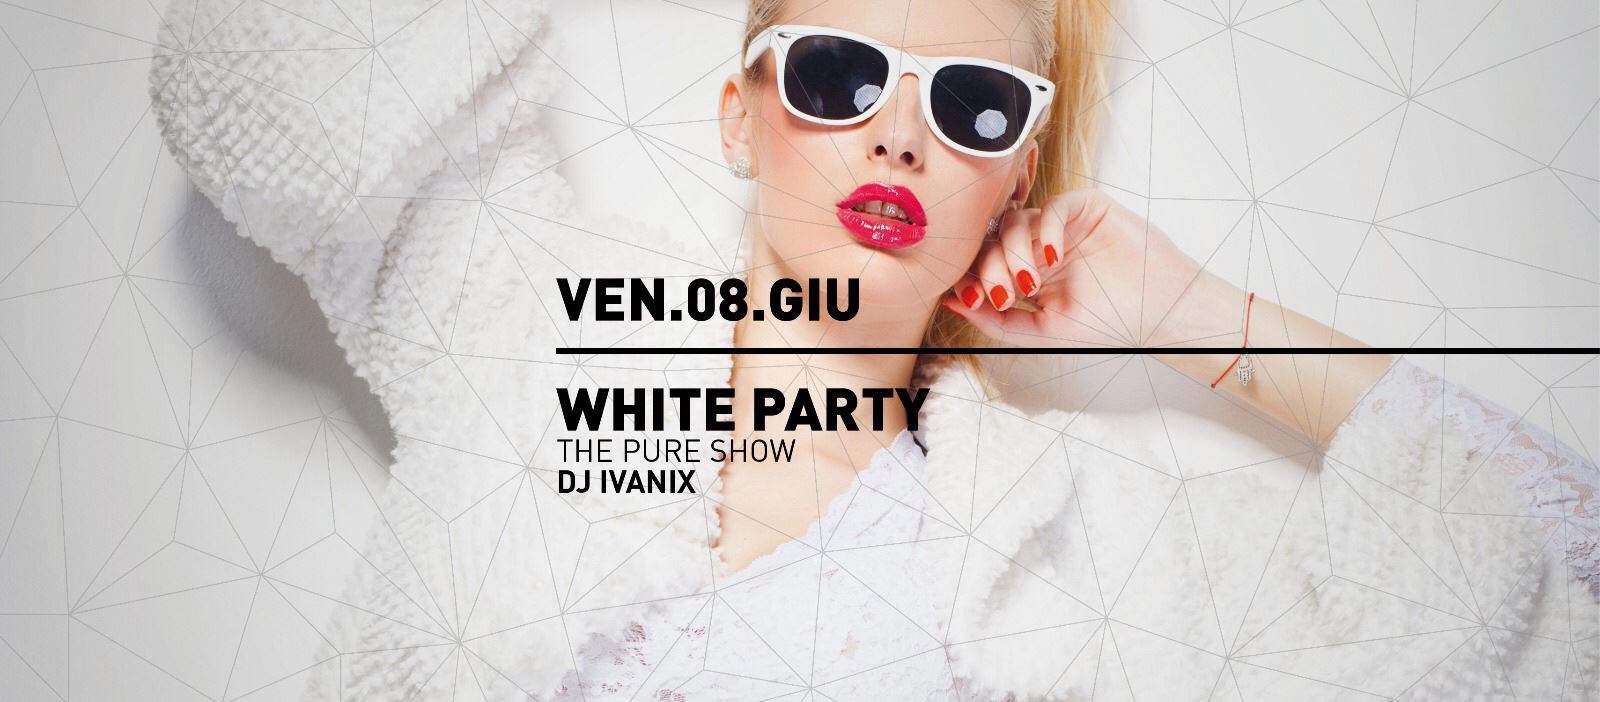 8/6 White Party @ Life Club - Rovetta (BG) con IvaniX, voice Matteo Palumbo / Live Happy Hour con Ligabue Tribute